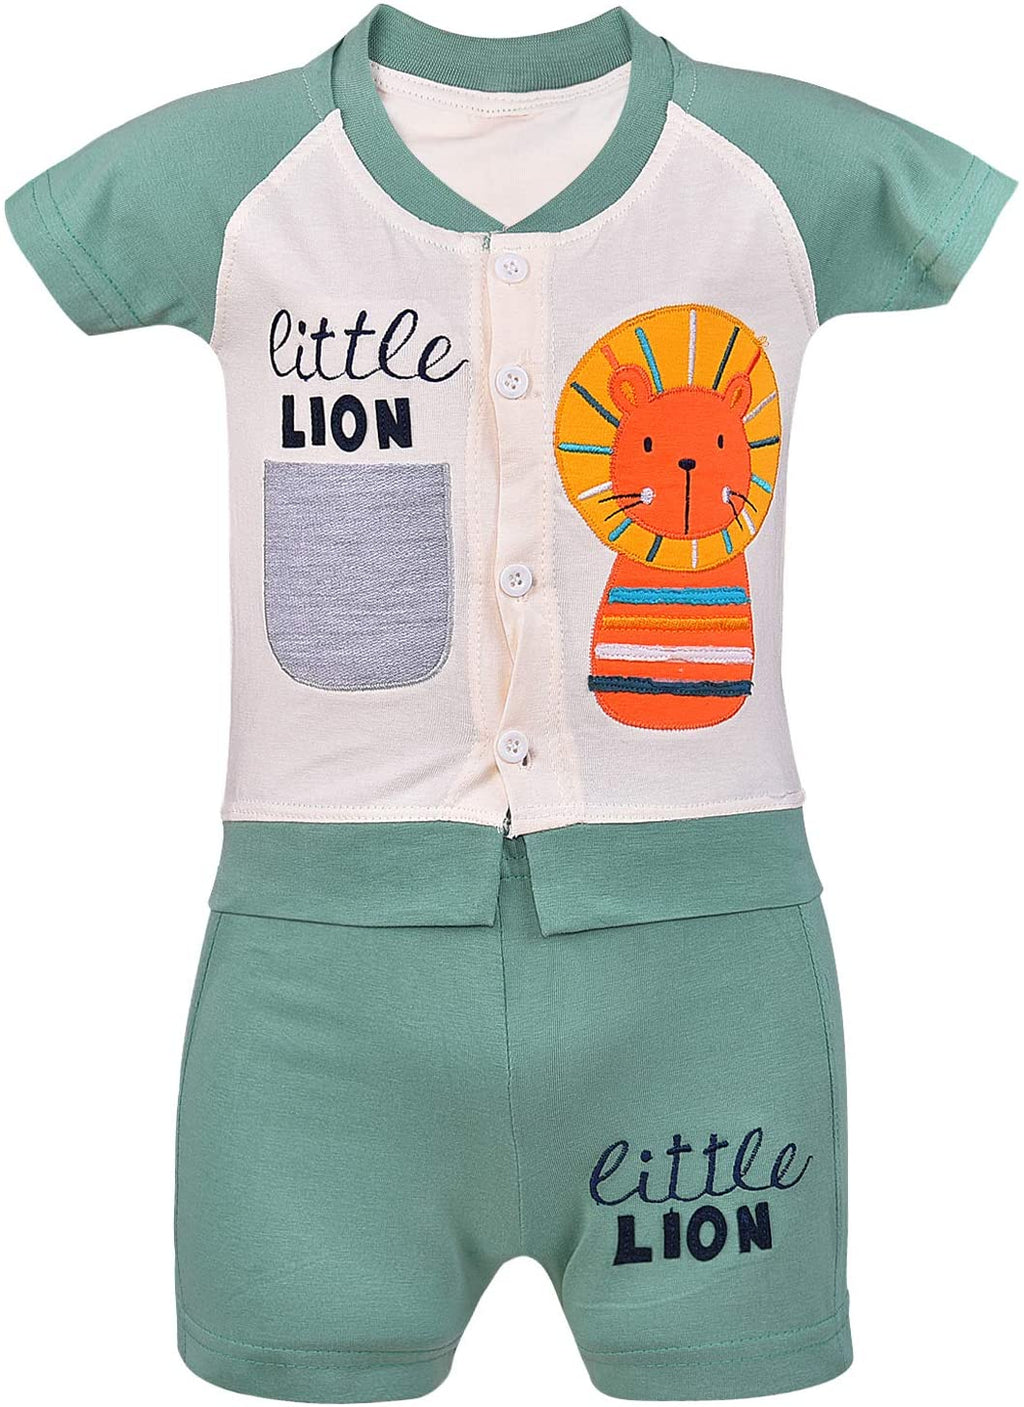 Wish Karo Unisex Clothing Sets for Boys & Baby Girls-(bt23grn)